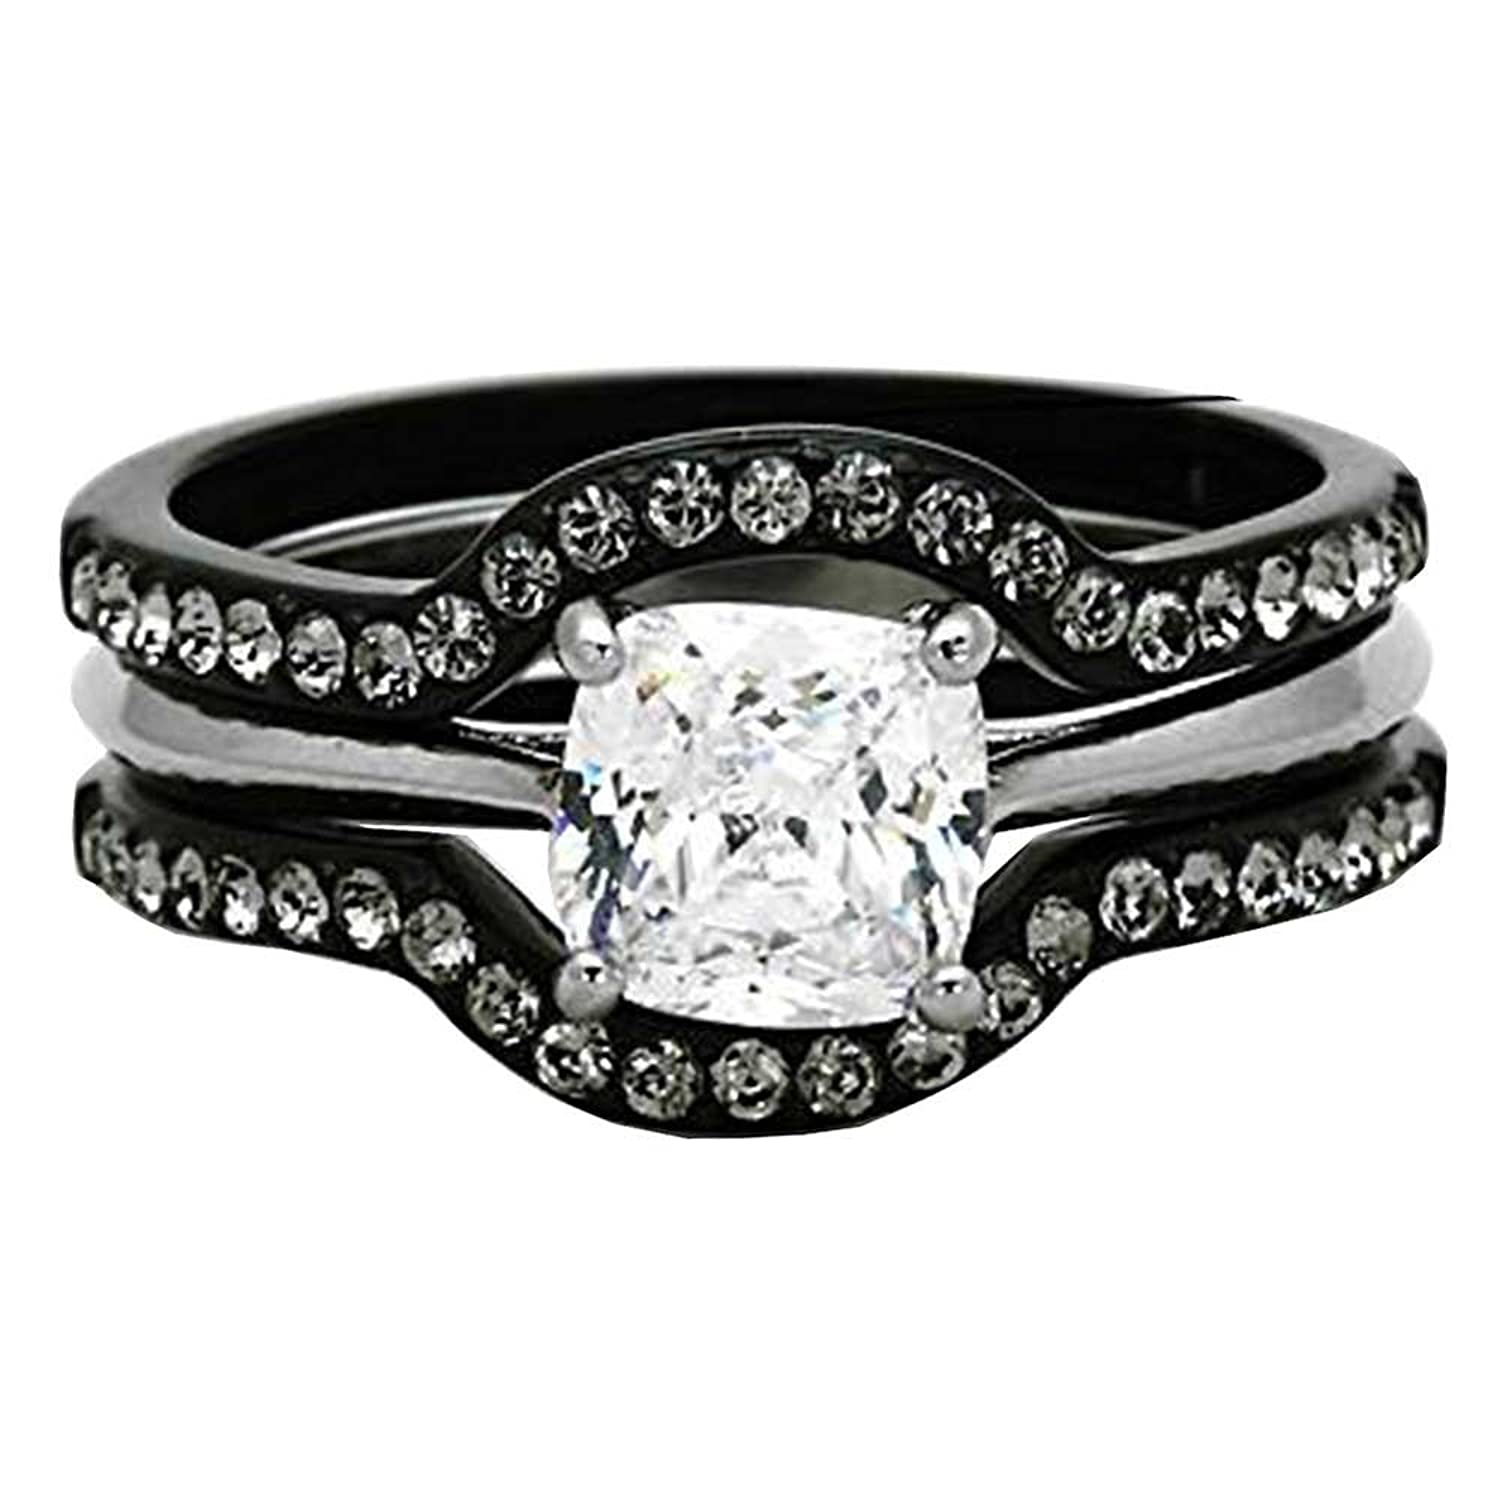 Amazoncom FlameReflection Black Stainless Steel Wedding Ring Sets